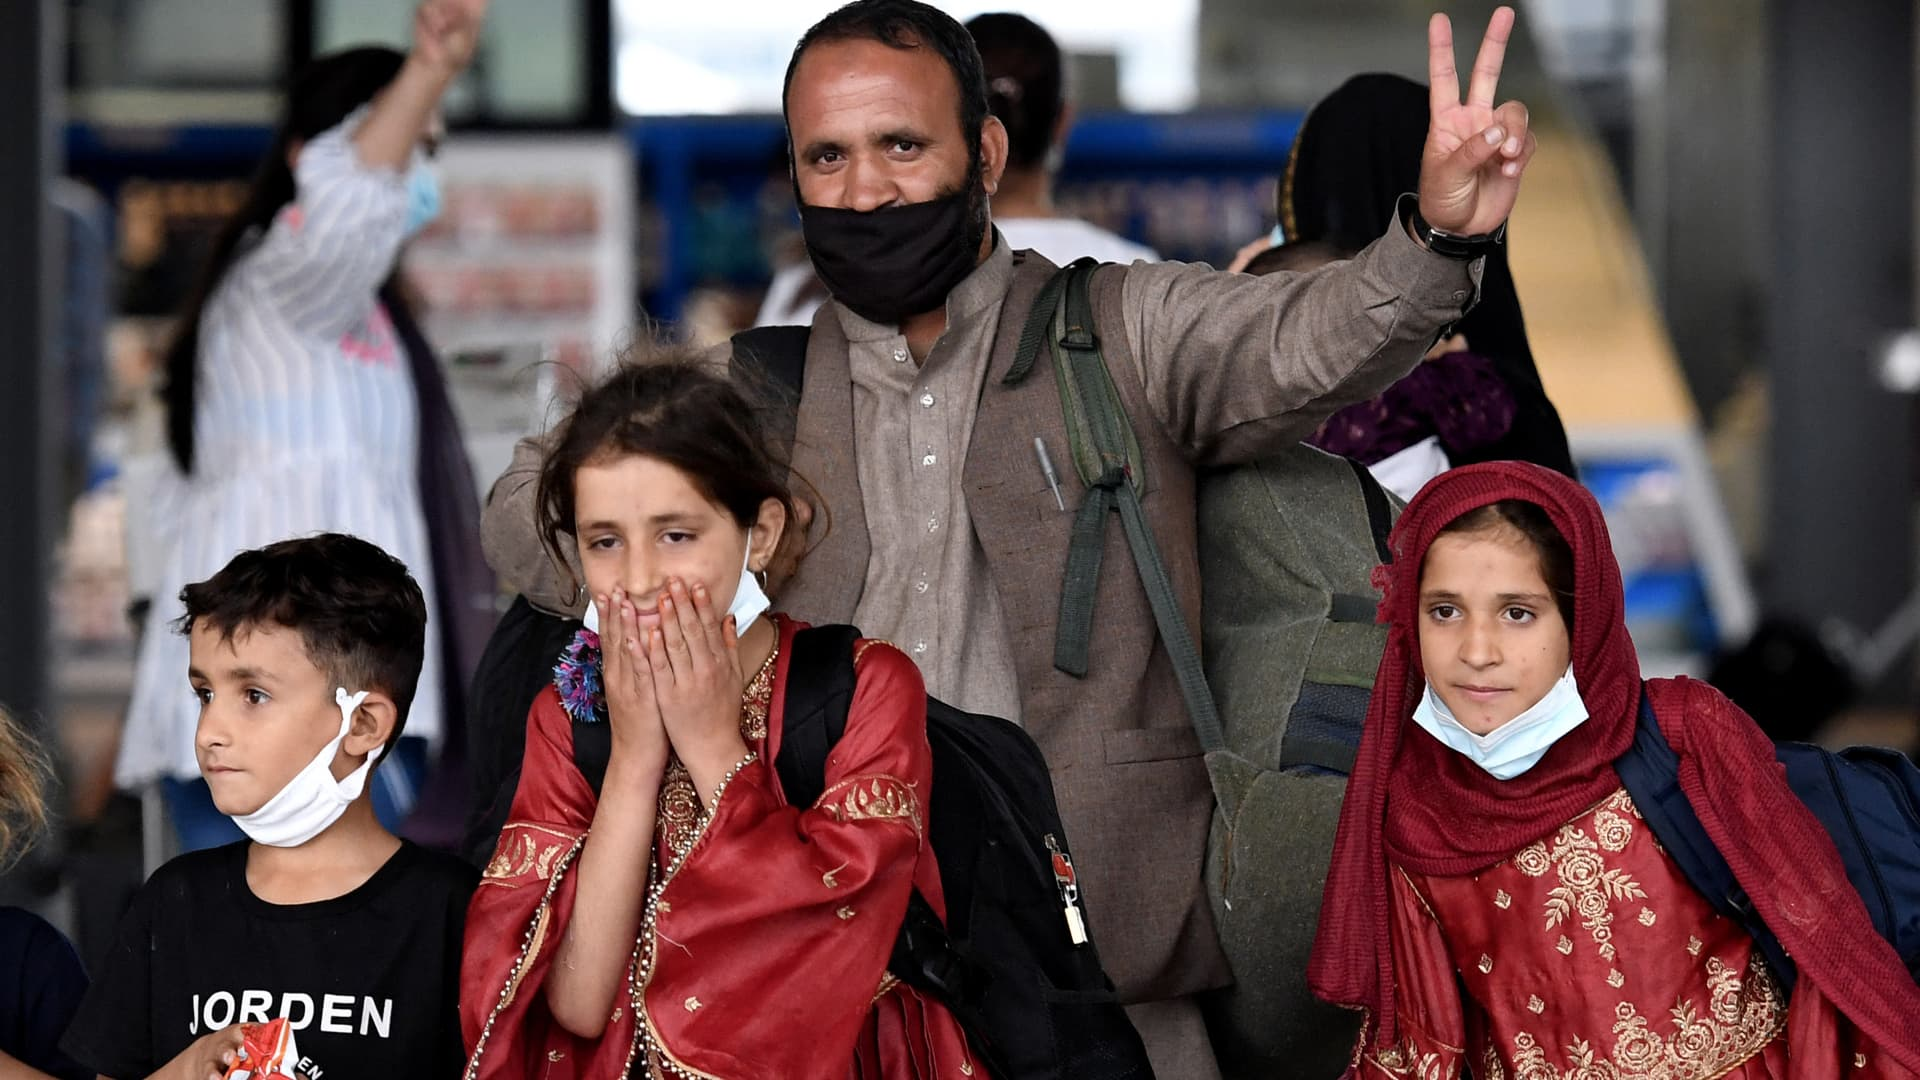 An Afghan family arrives at Dulles International Airport in Virginia on Aug. 27, 2021, after being evacuated from Kabul following the Taliban takeover of Afghanistan.